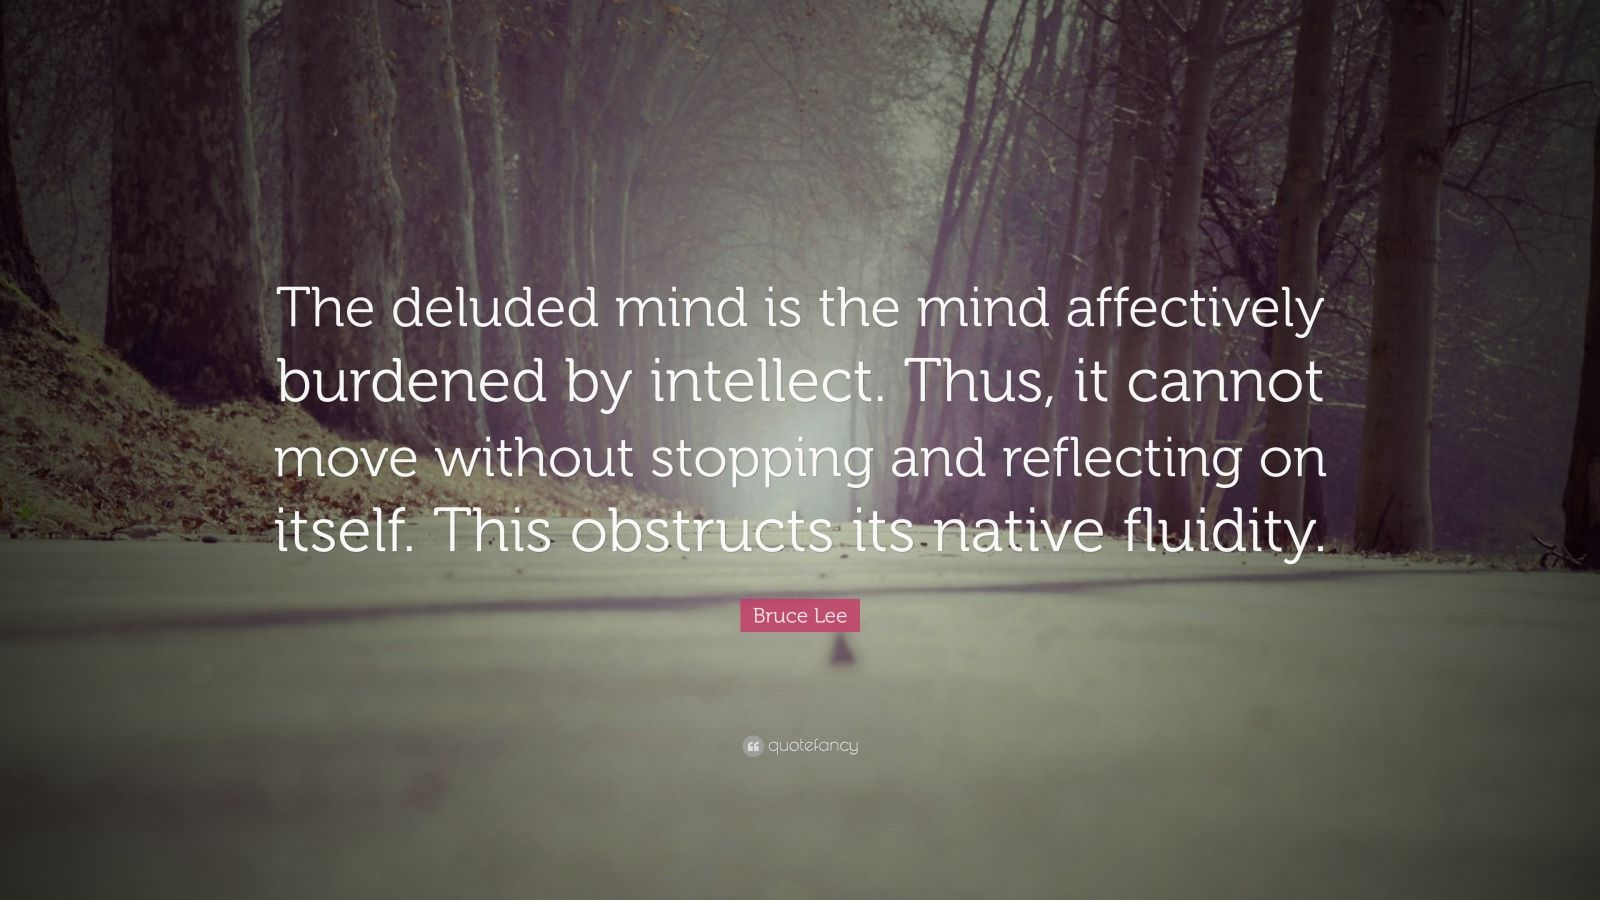 """Bruce Lee Quote: """"The deluded mind is the mind affectively burdened by intellect. Thus, it cannot move without stopping and reflecting on itself. This obstructs its native fluidity."""""""